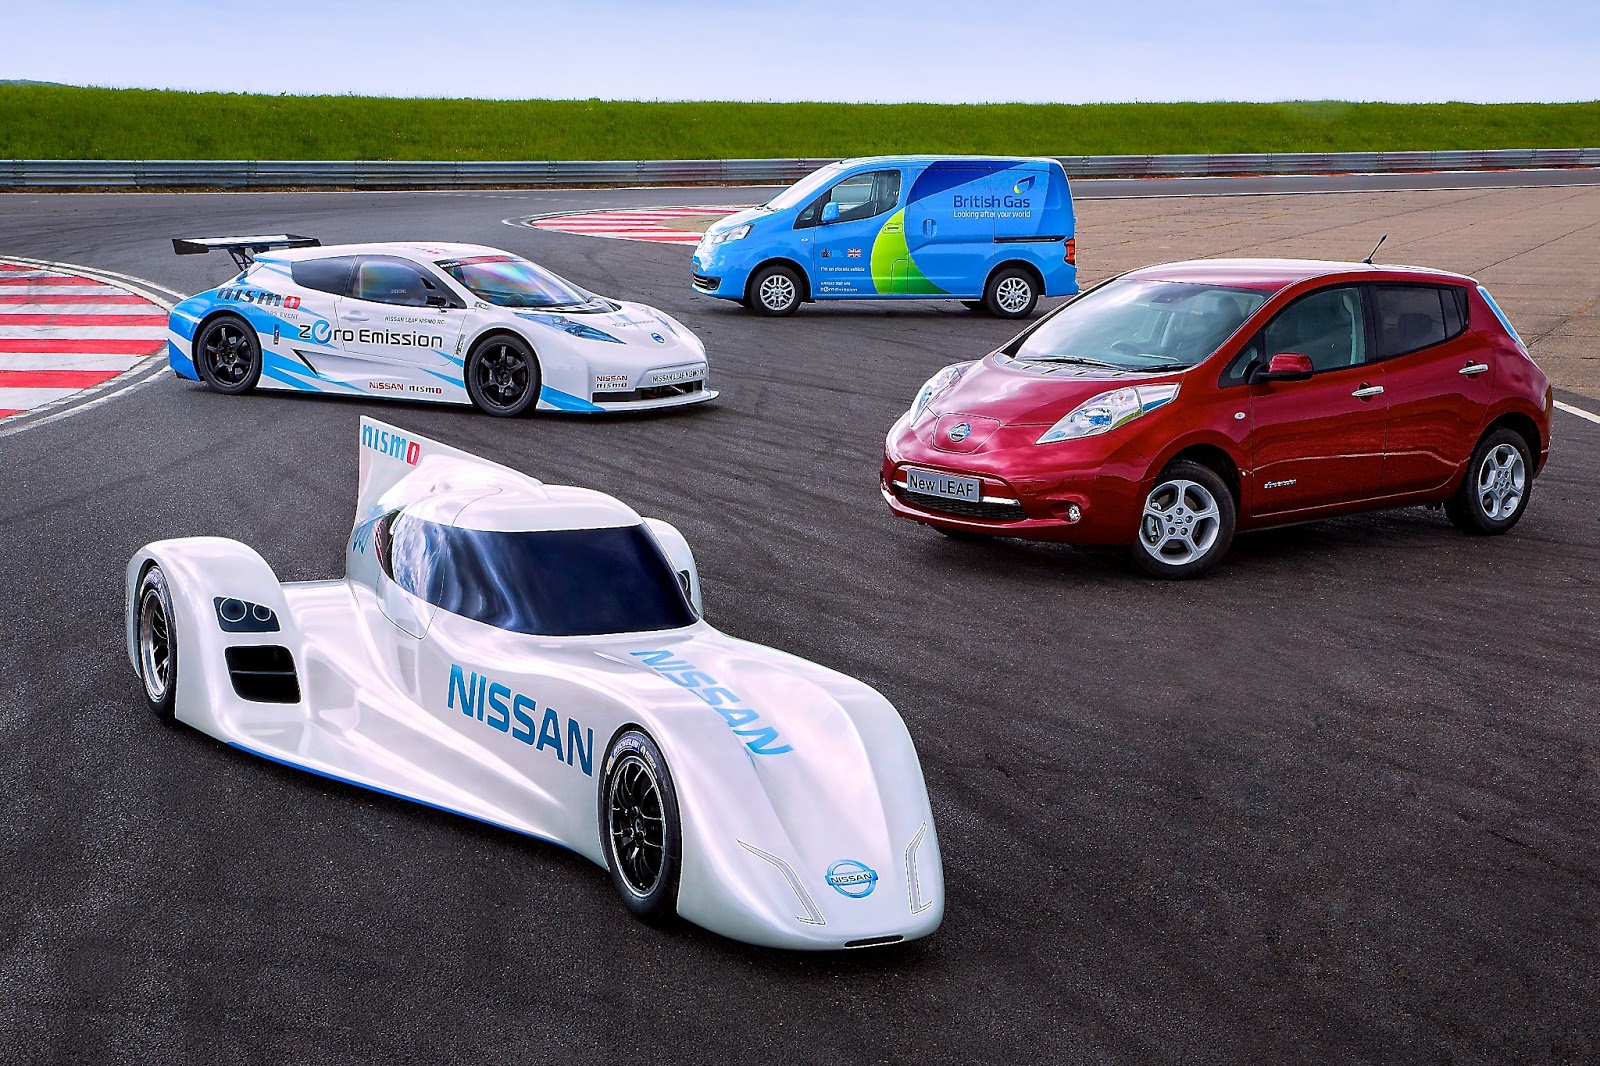 NISSAN unveil world's fastest electric racing car at Le ...